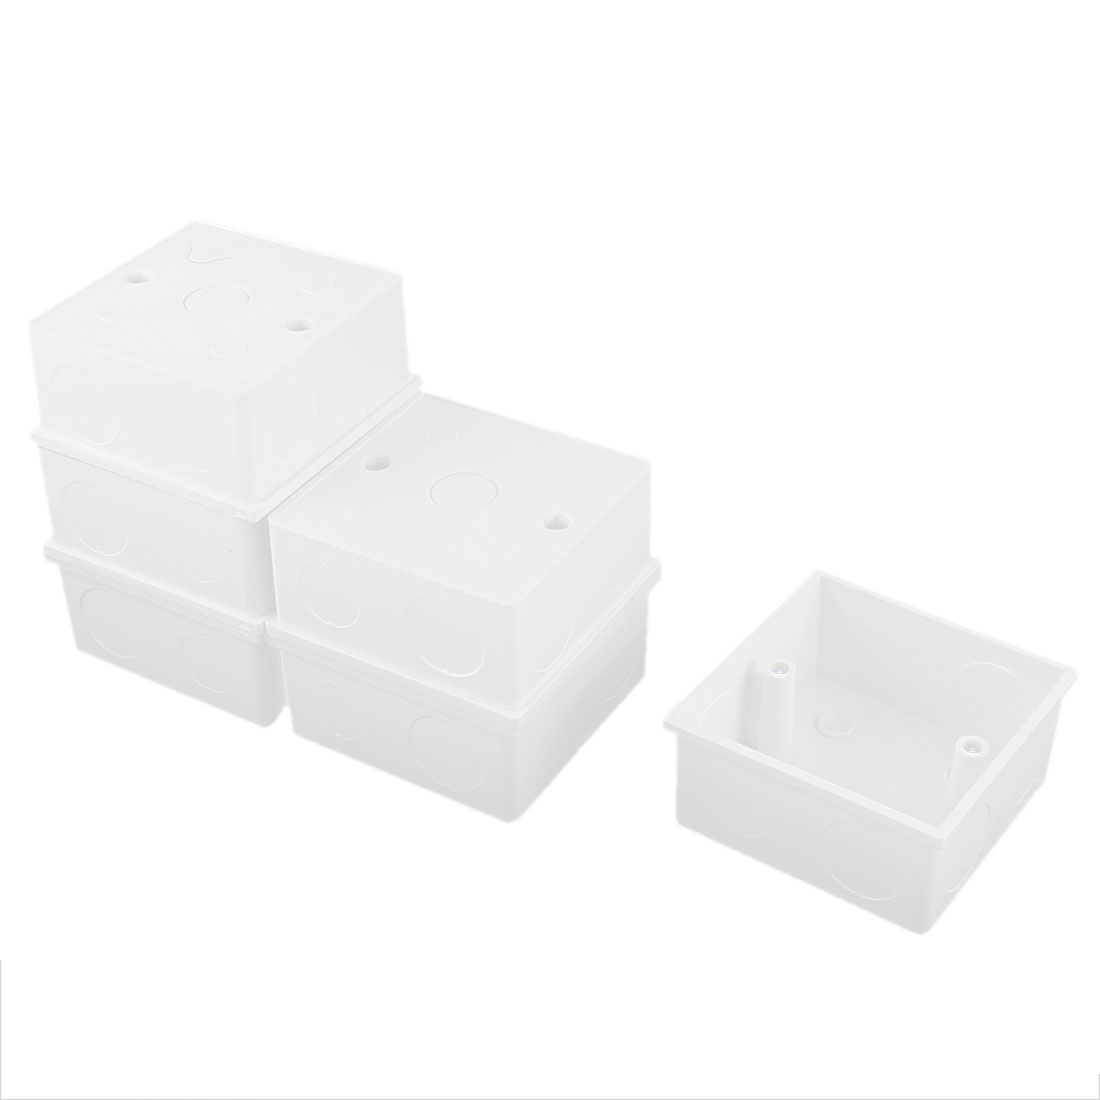 6pcs 86mm x 86mm x 39mm White PVC Single Gang Mount Back Box for Wall Socket